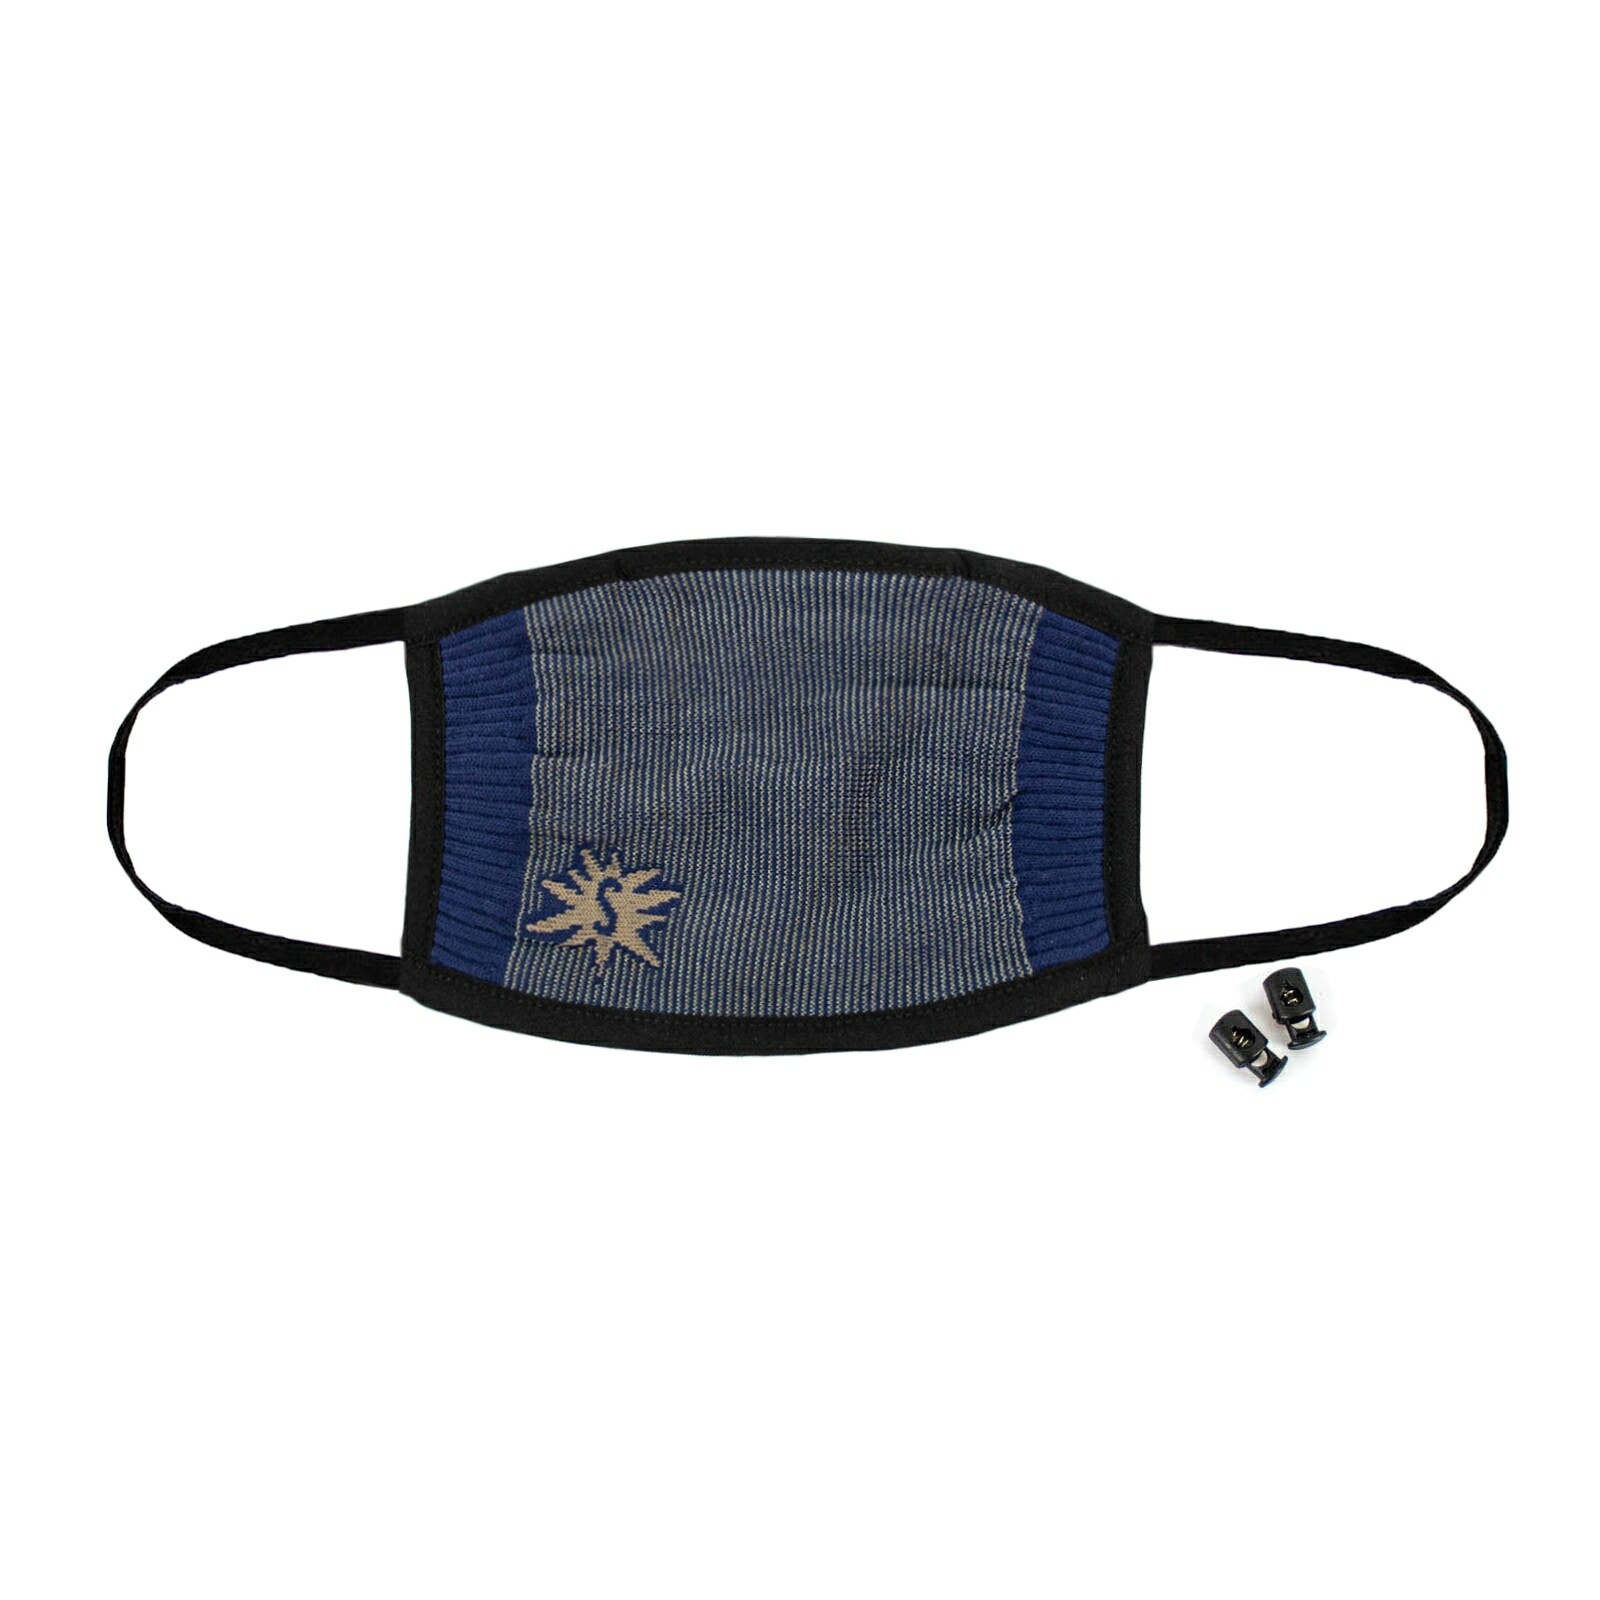 Indigo Blue - Solid Color Face Masks Blue - Unisex in Navy